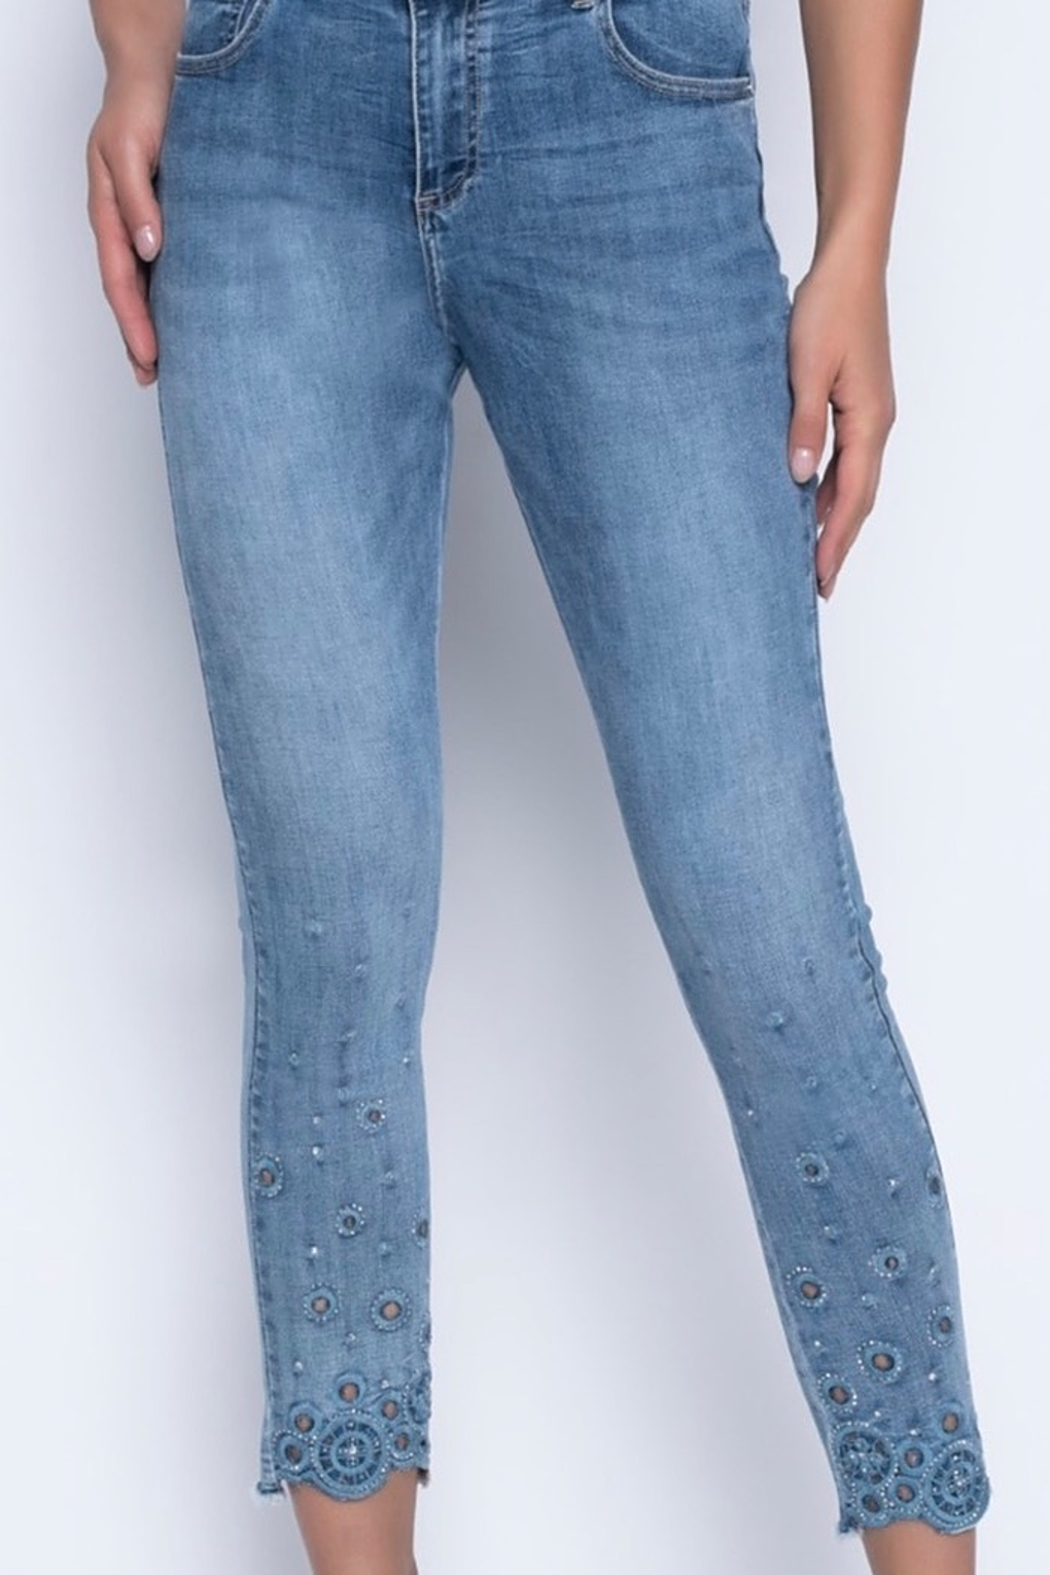 Joseph Ribkoff  Fitted Capri jeans with rhinestone and cutout detail - Main Image